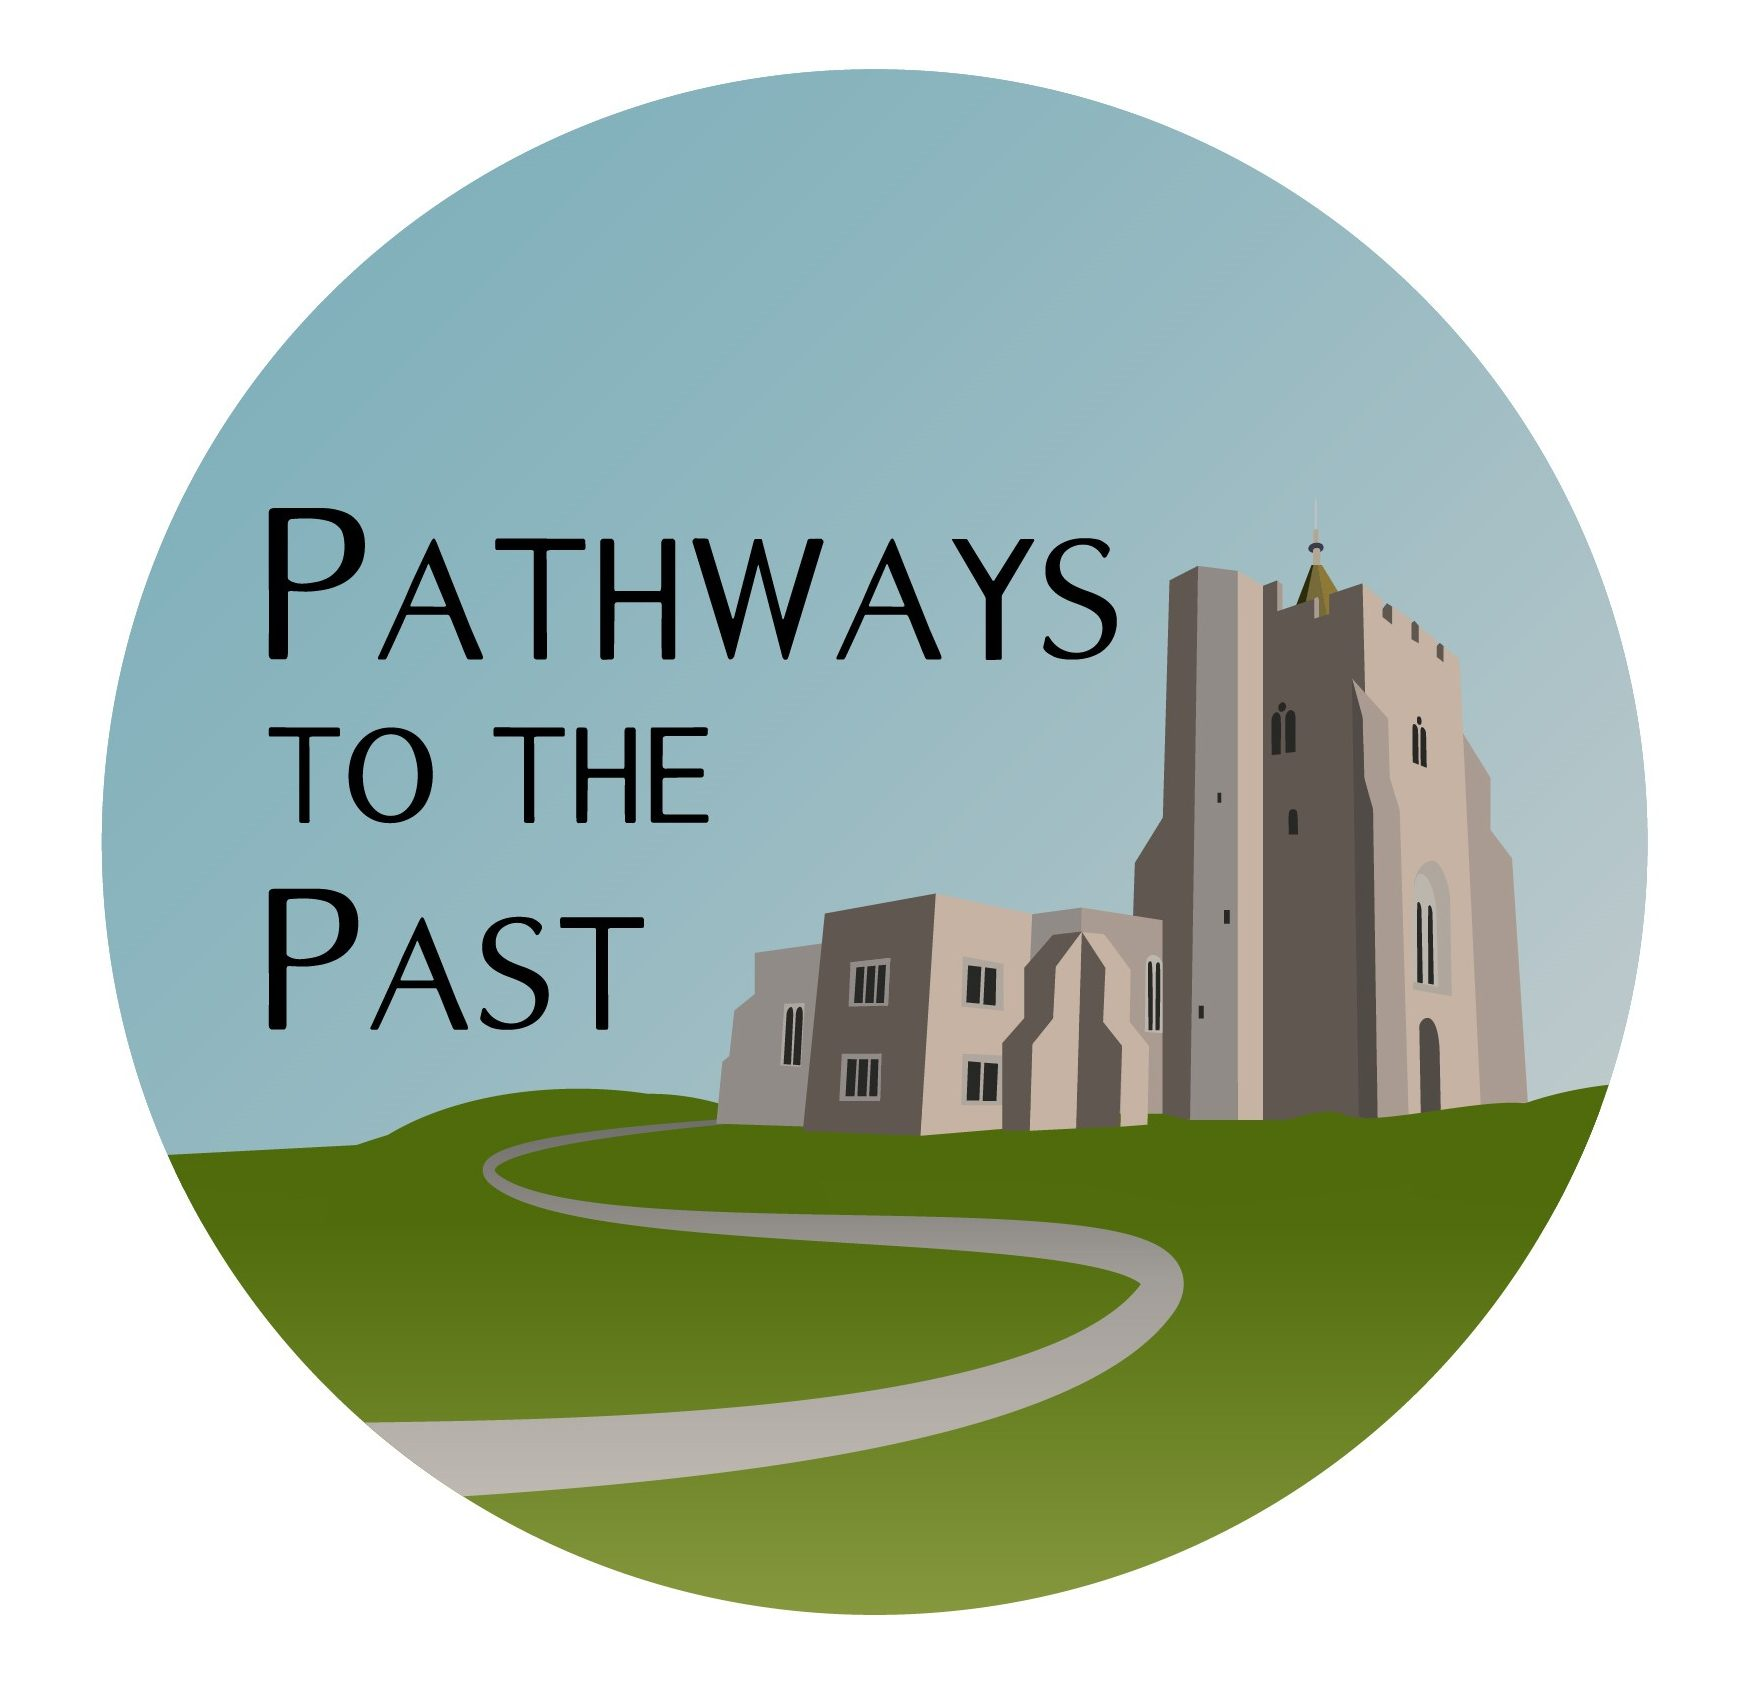 Pathways to the Past